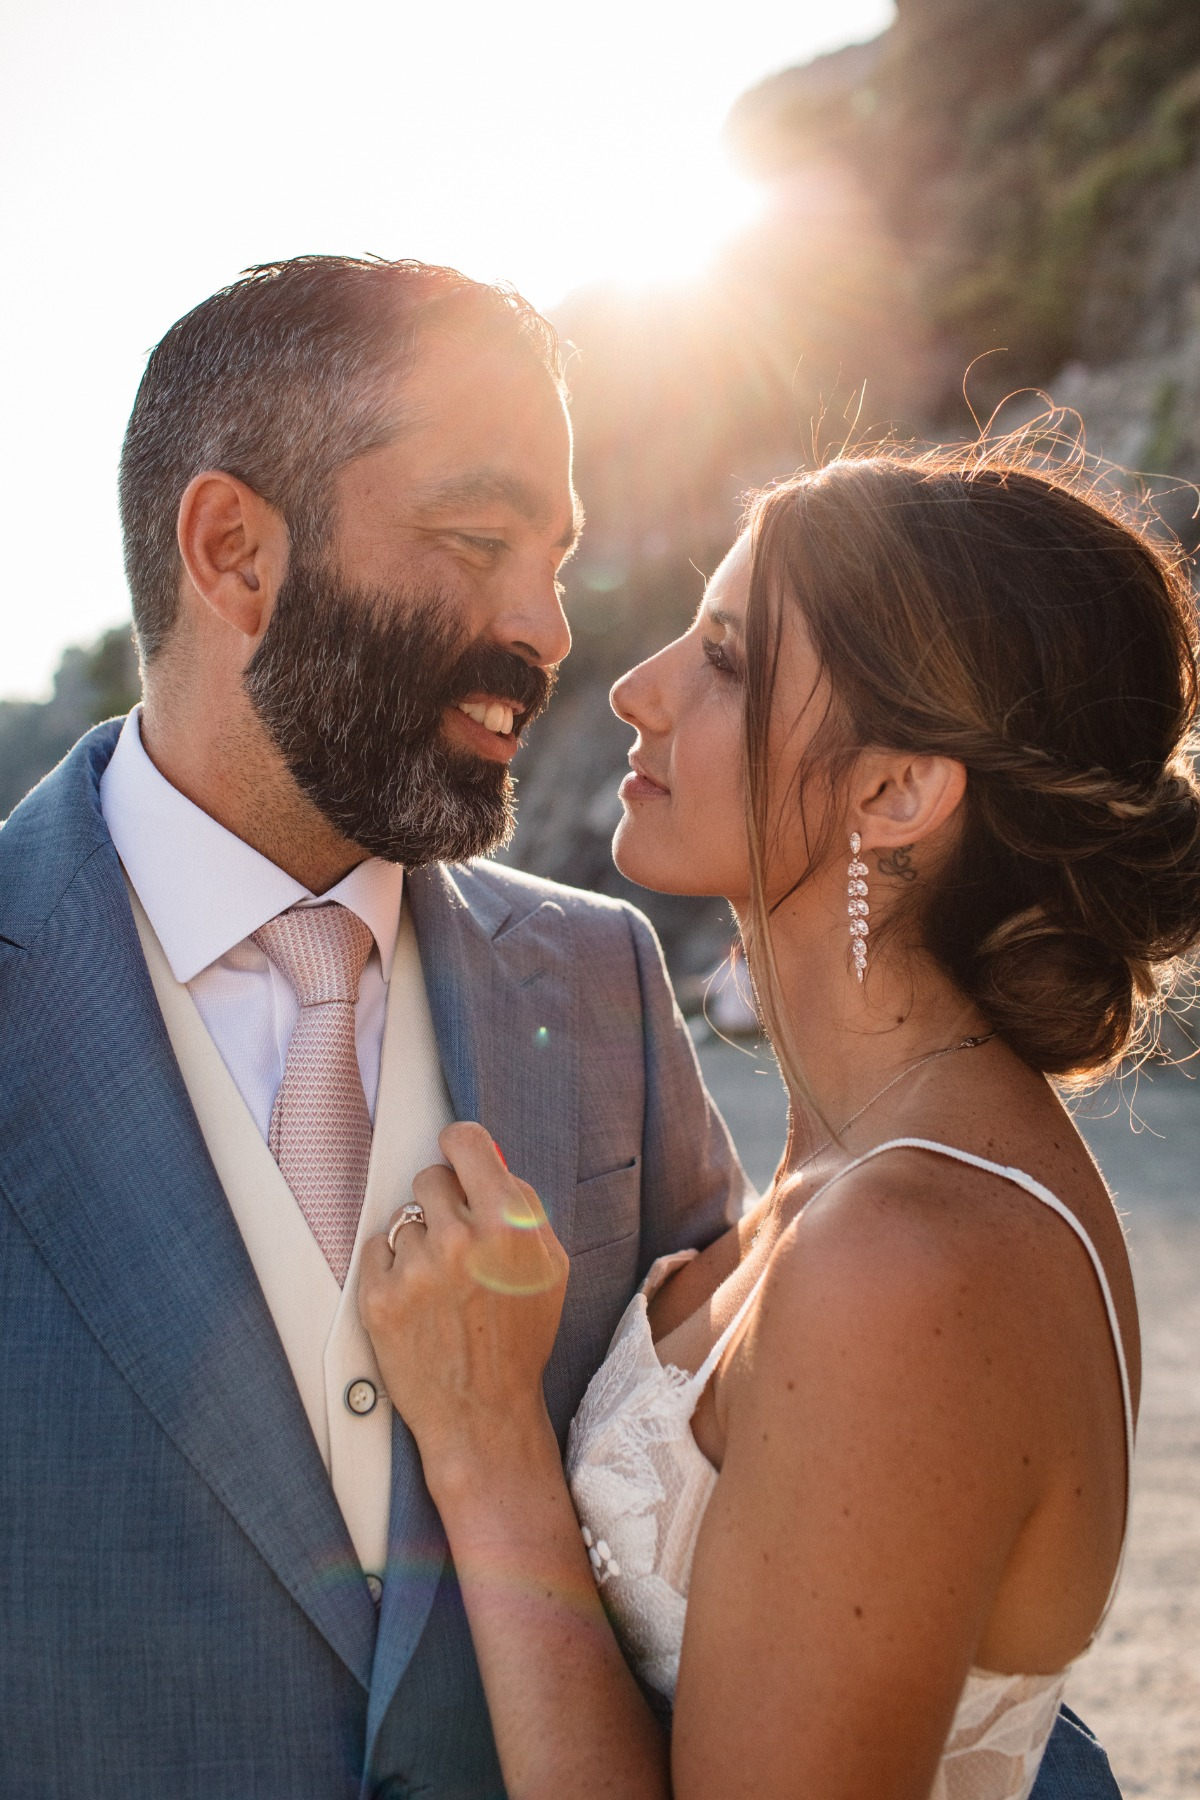 Amalfi Coast elopement photographed by Paolo Ceritano